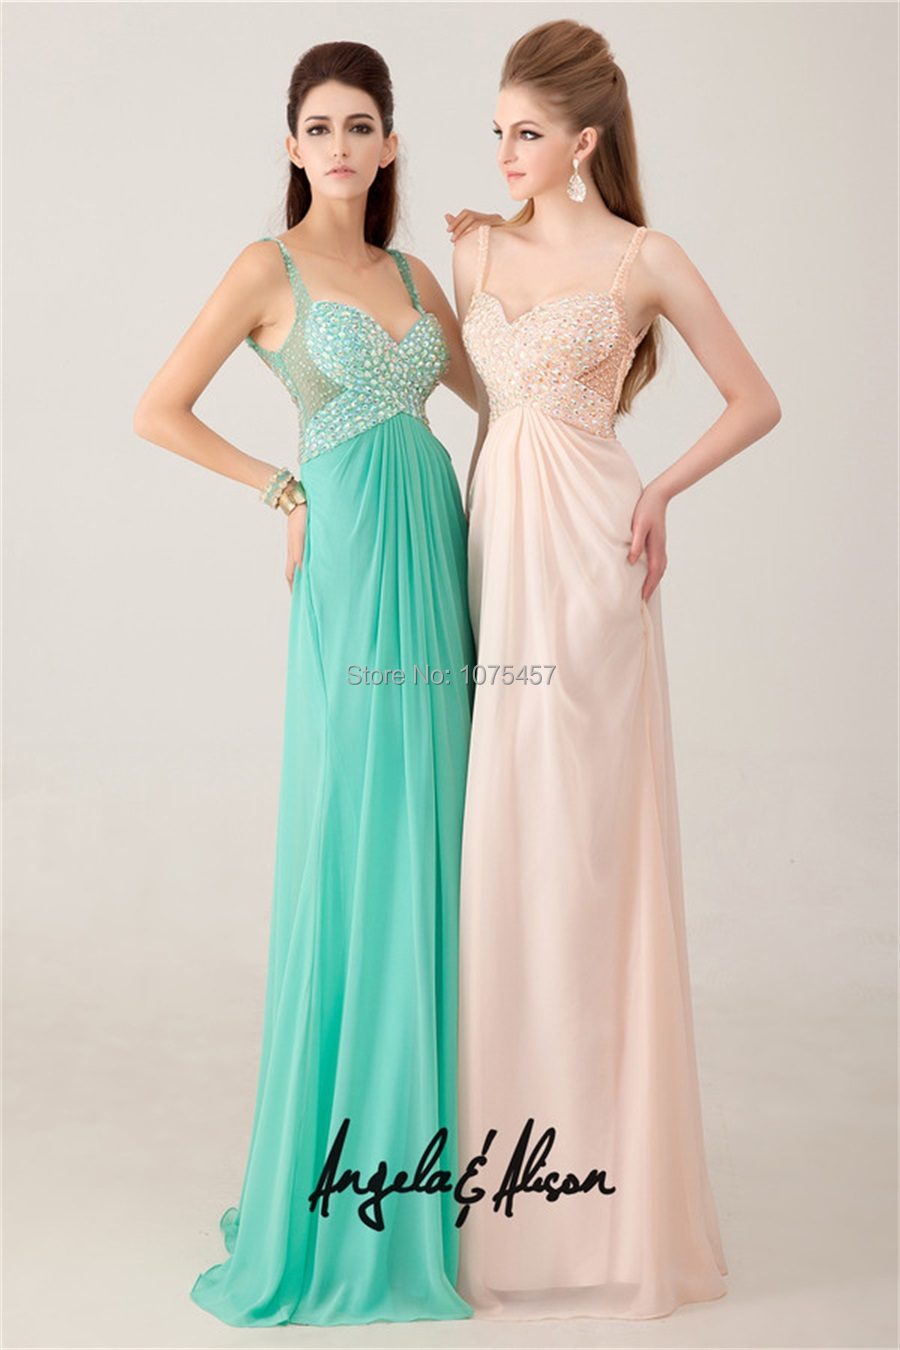 d202e5bfd2 Free Shipping Long Mint Green Prom Dresses Sexy Backless 2015 ...